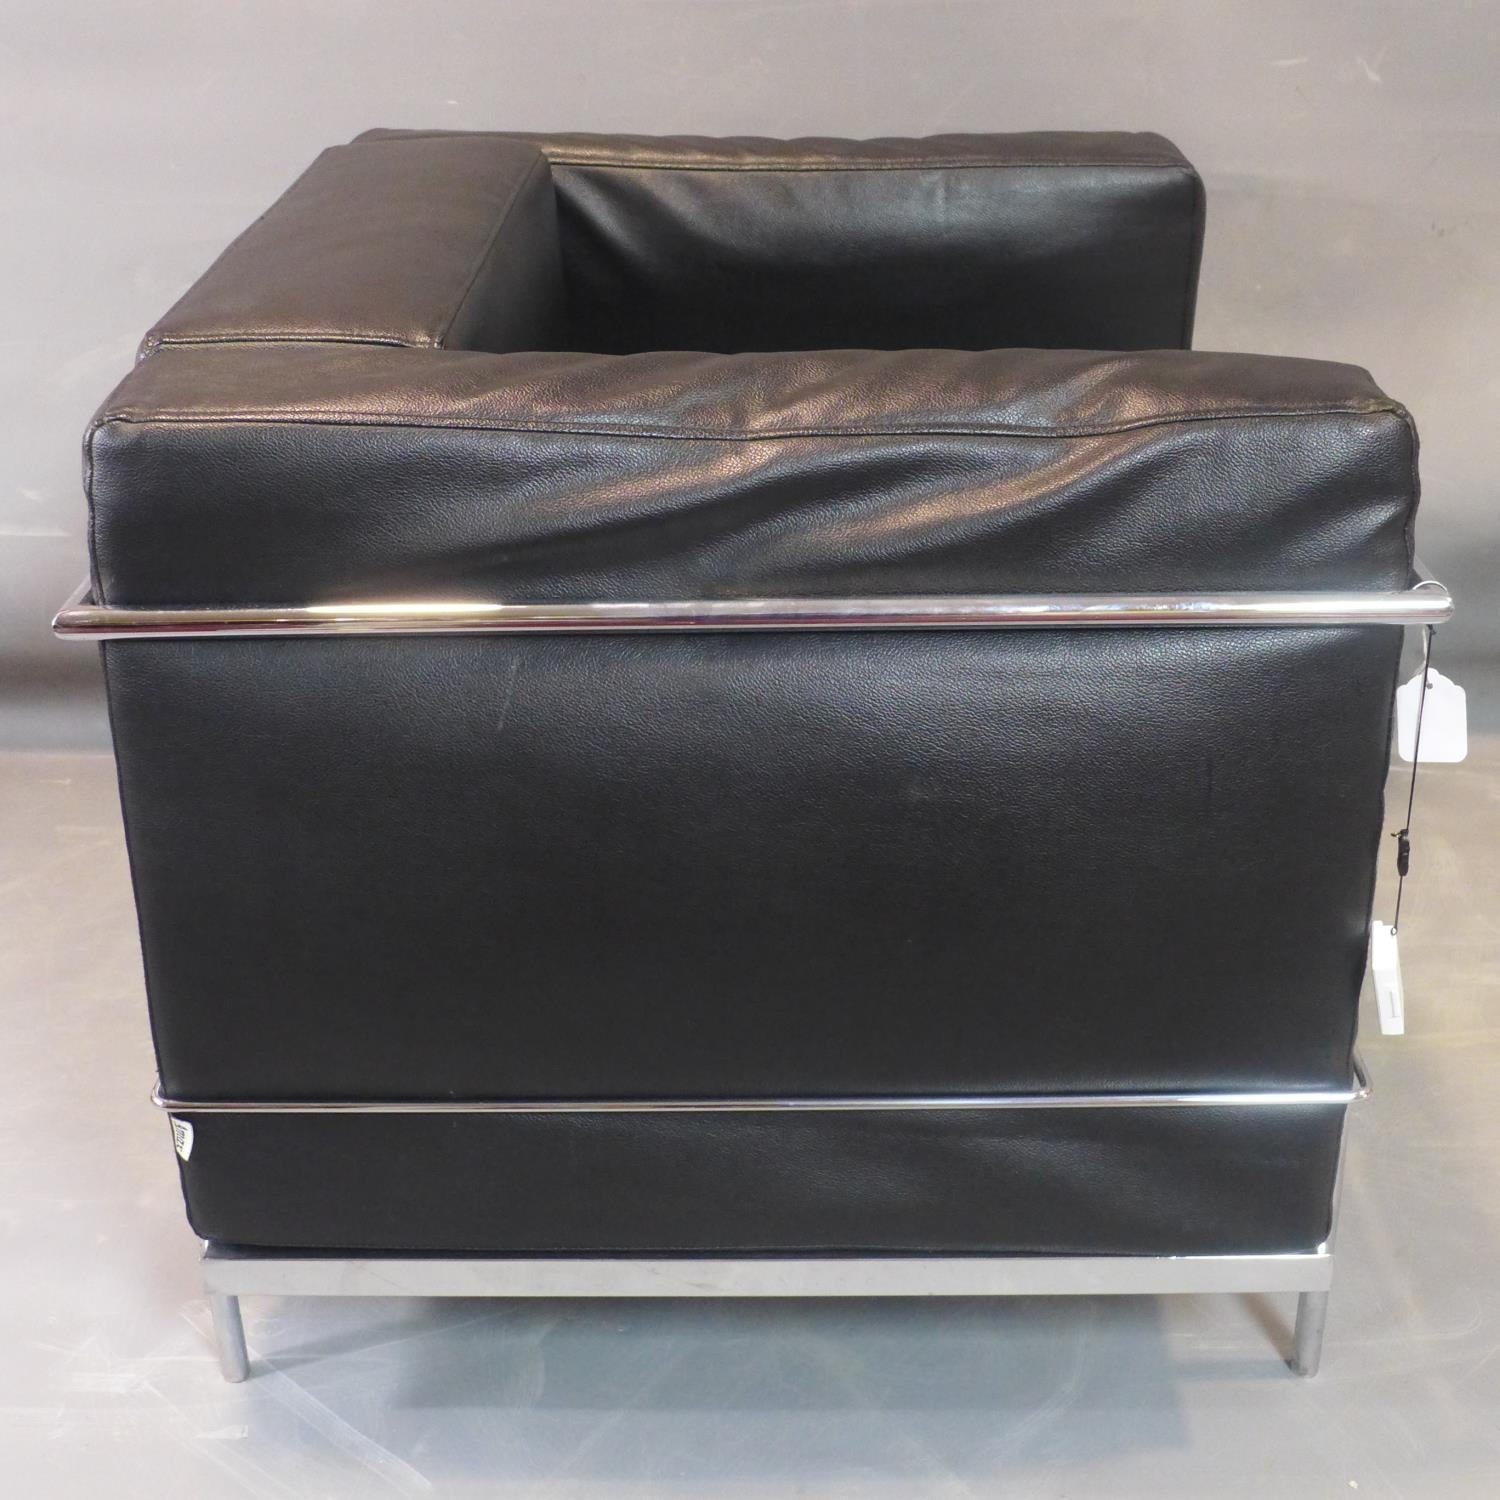 Lot 256 - A Le Corbusier style chrome and black leather sofa, with label for Amax, H.72 W.90 D.76cm